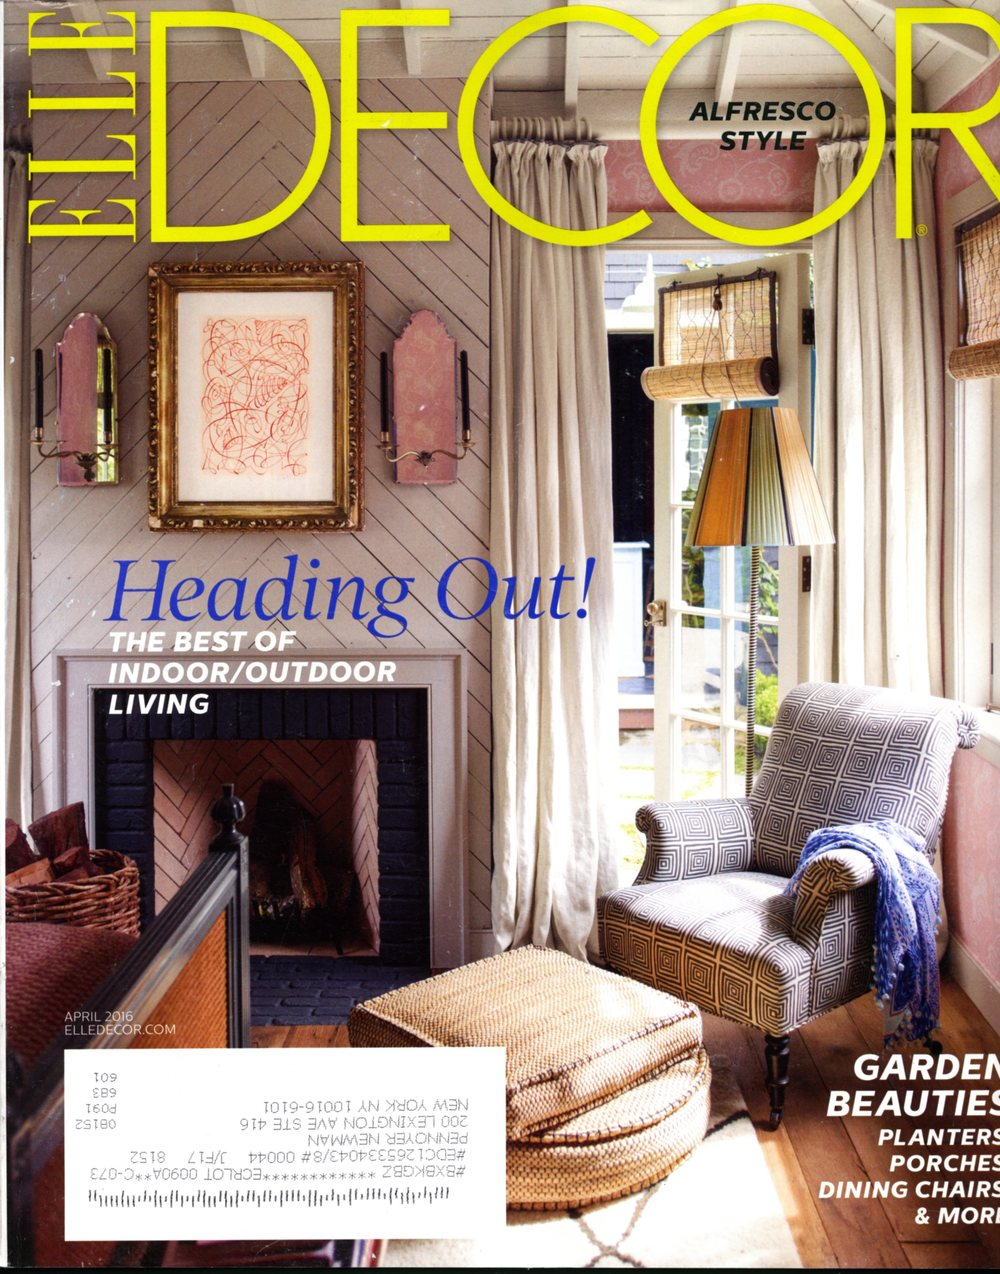 ElleDecor4-16cover013.jpg